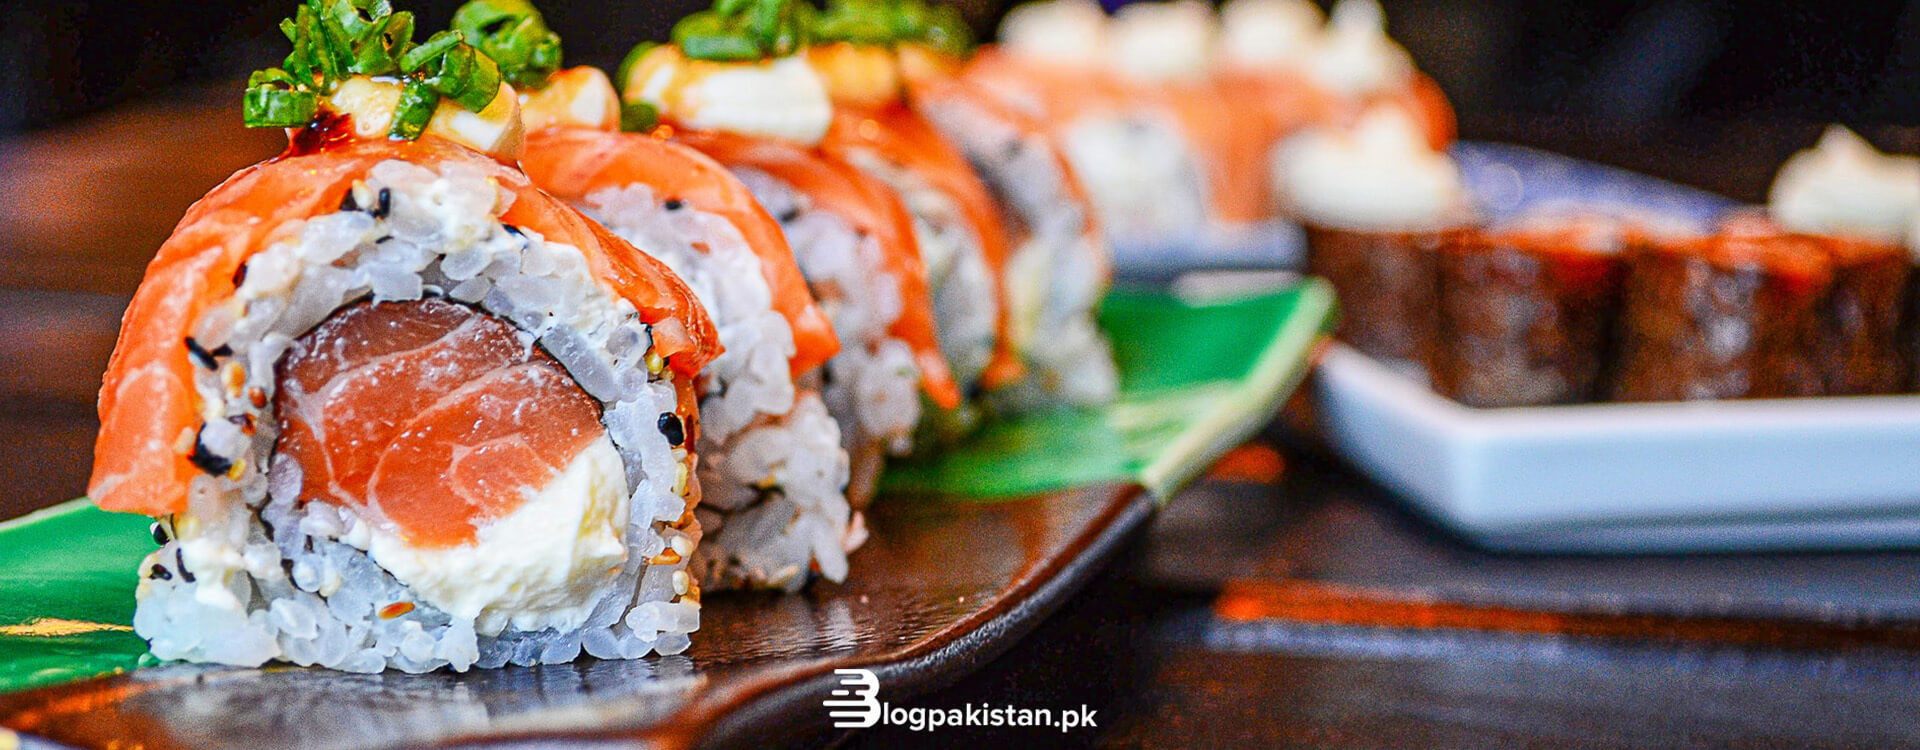 5 Places to Get The Best Sushi in Islamabad